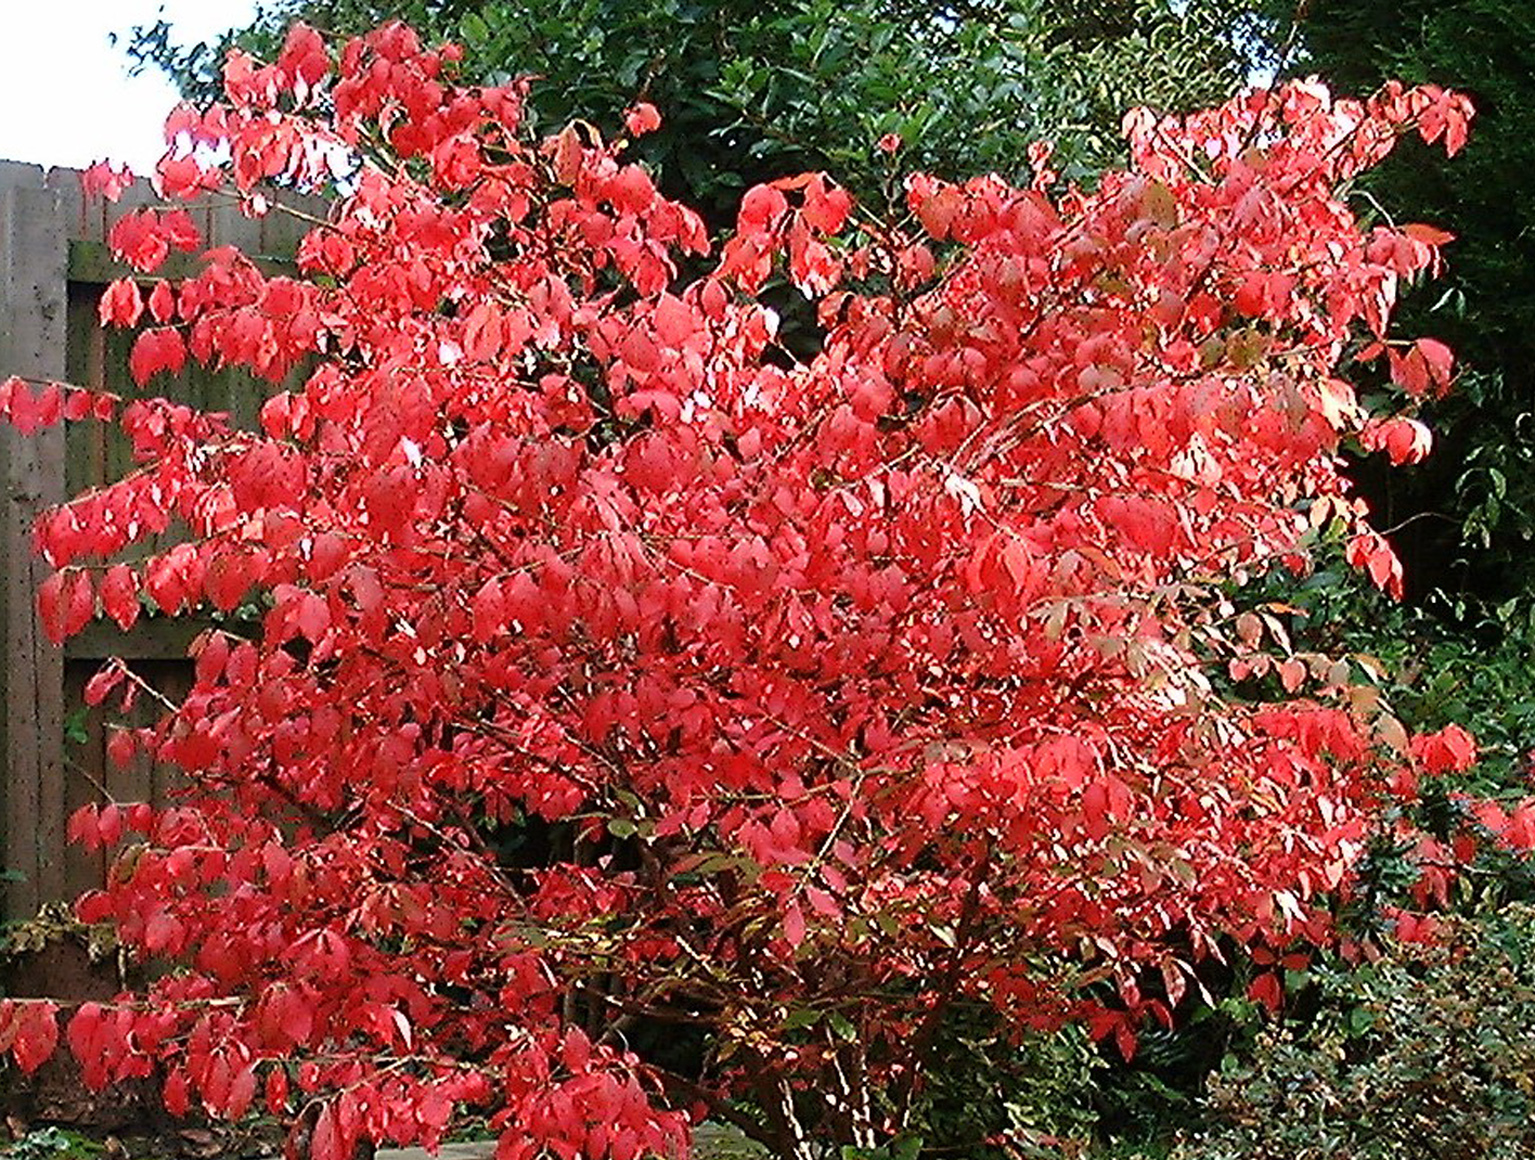 The Euonymus in the fall.